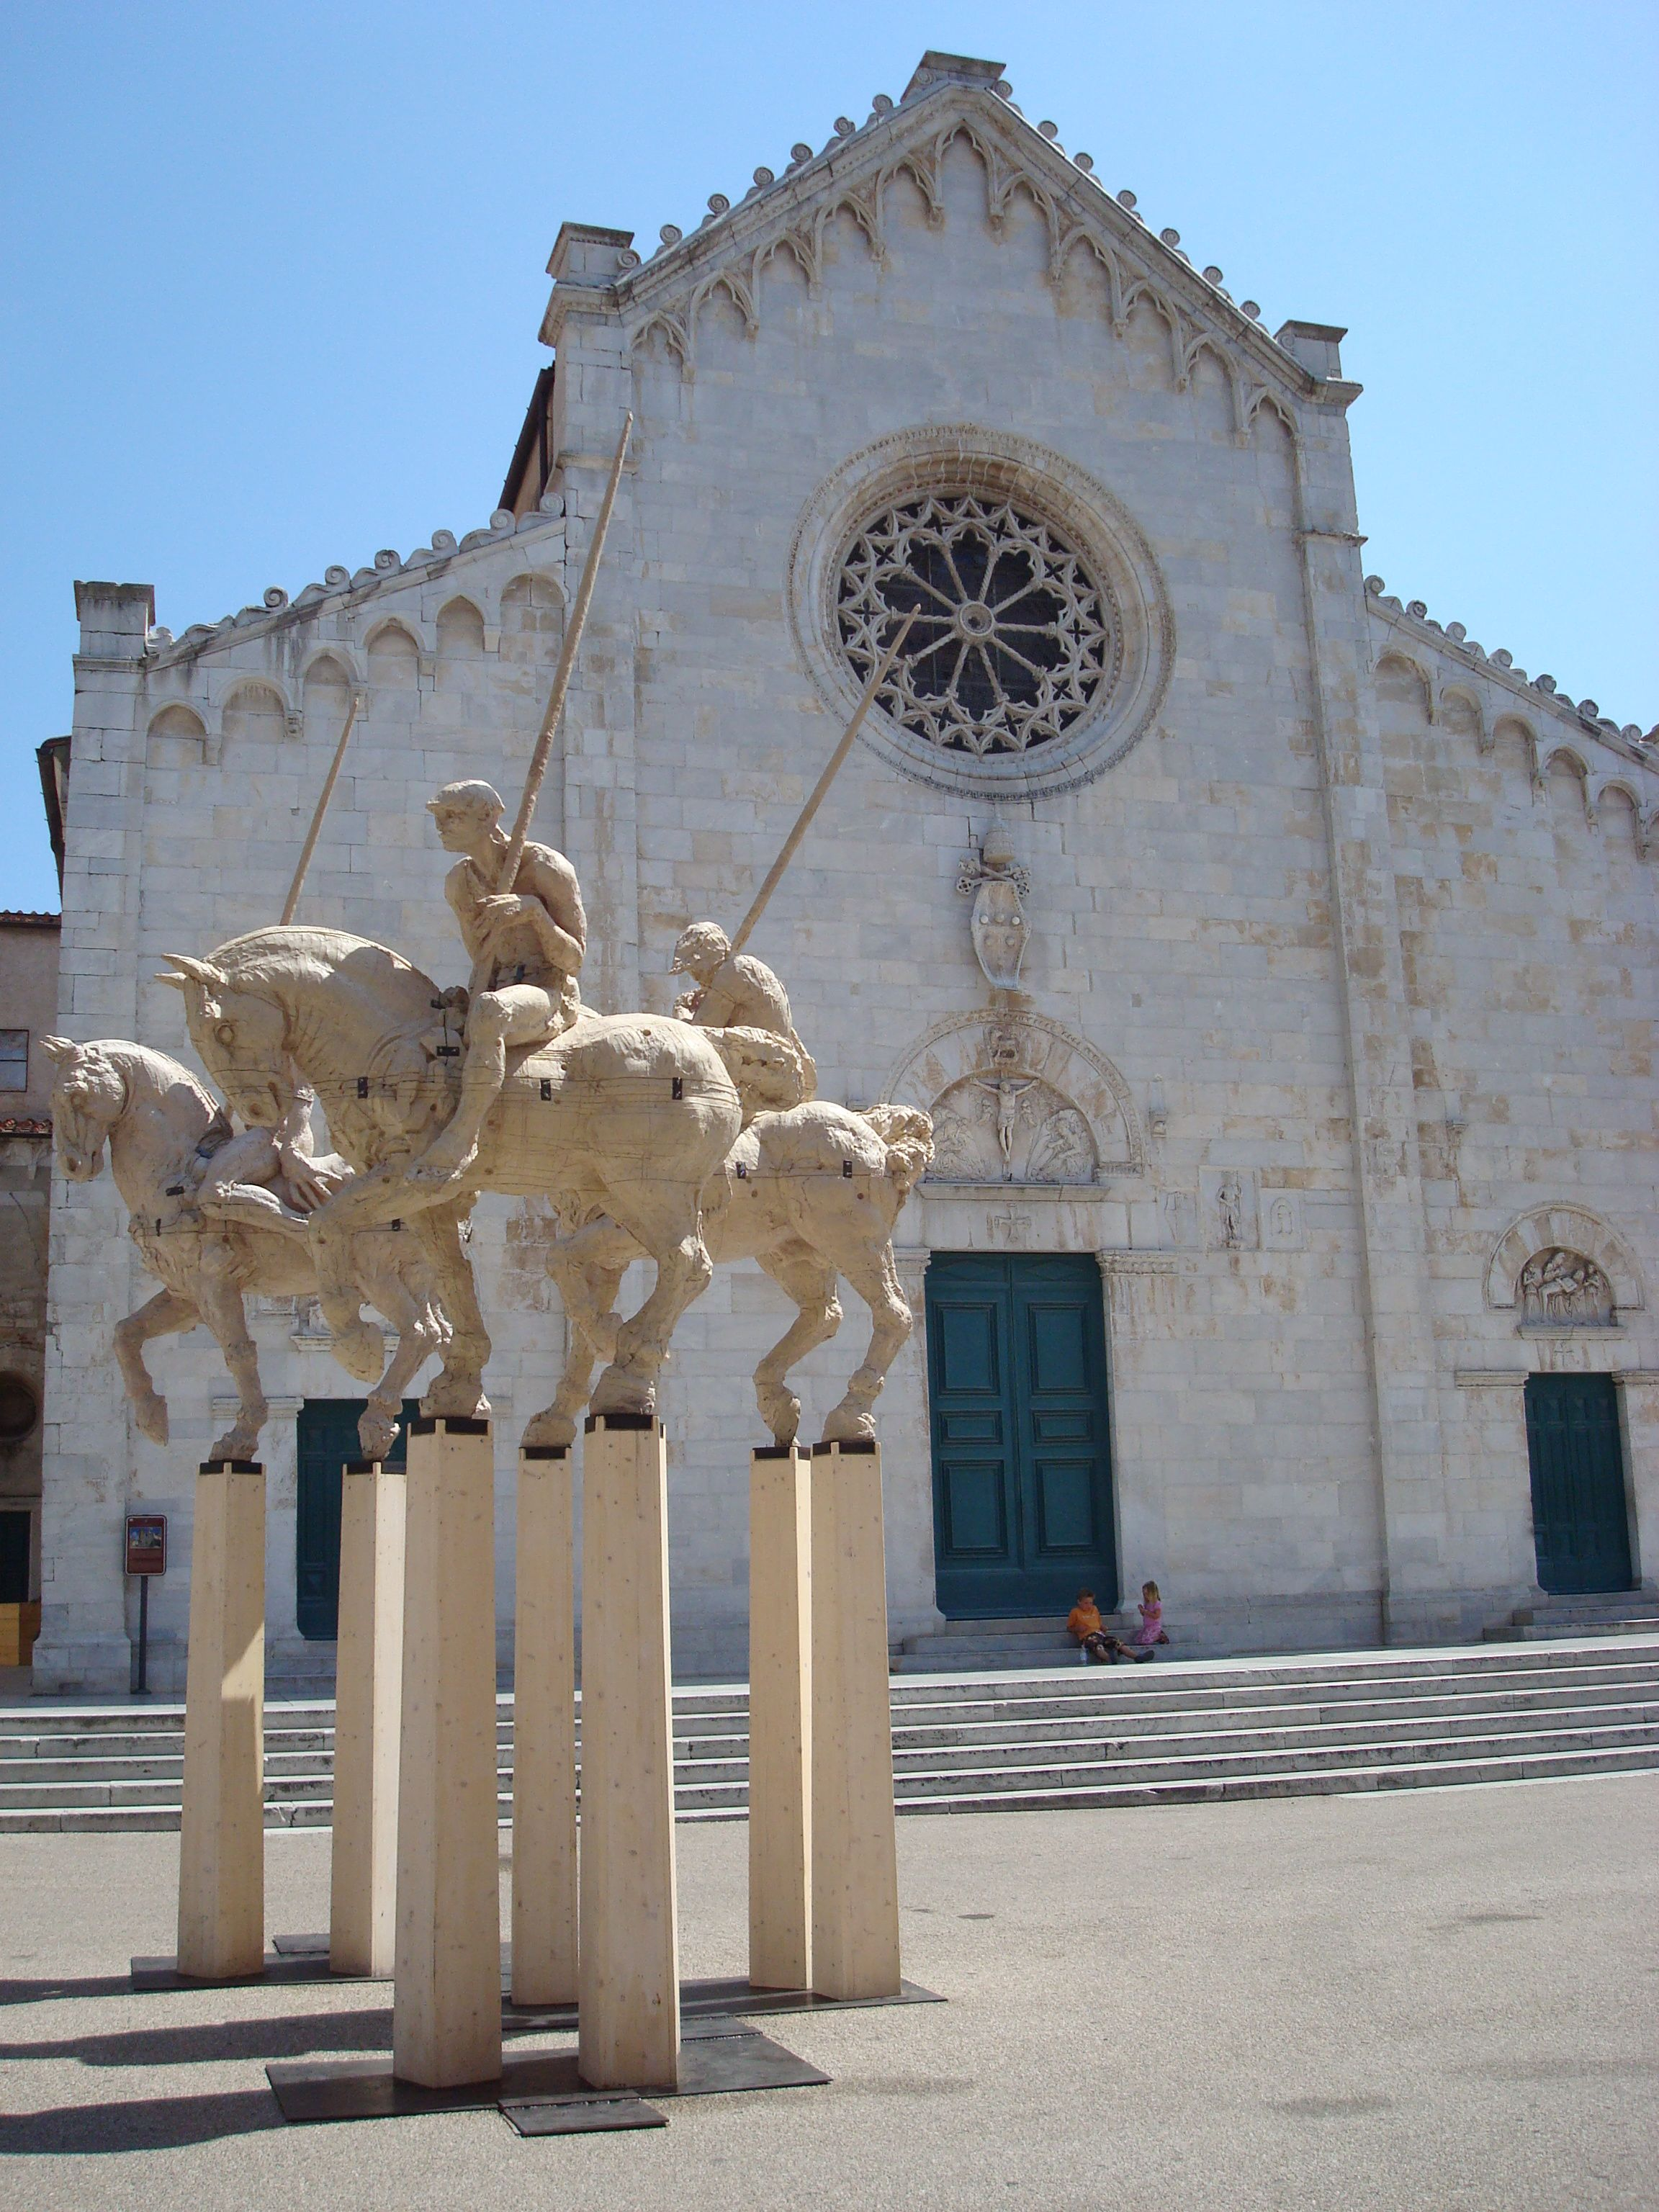 Marina di Pietrassanta Tuscany Italy SACI field trips include Pietrasanta on the